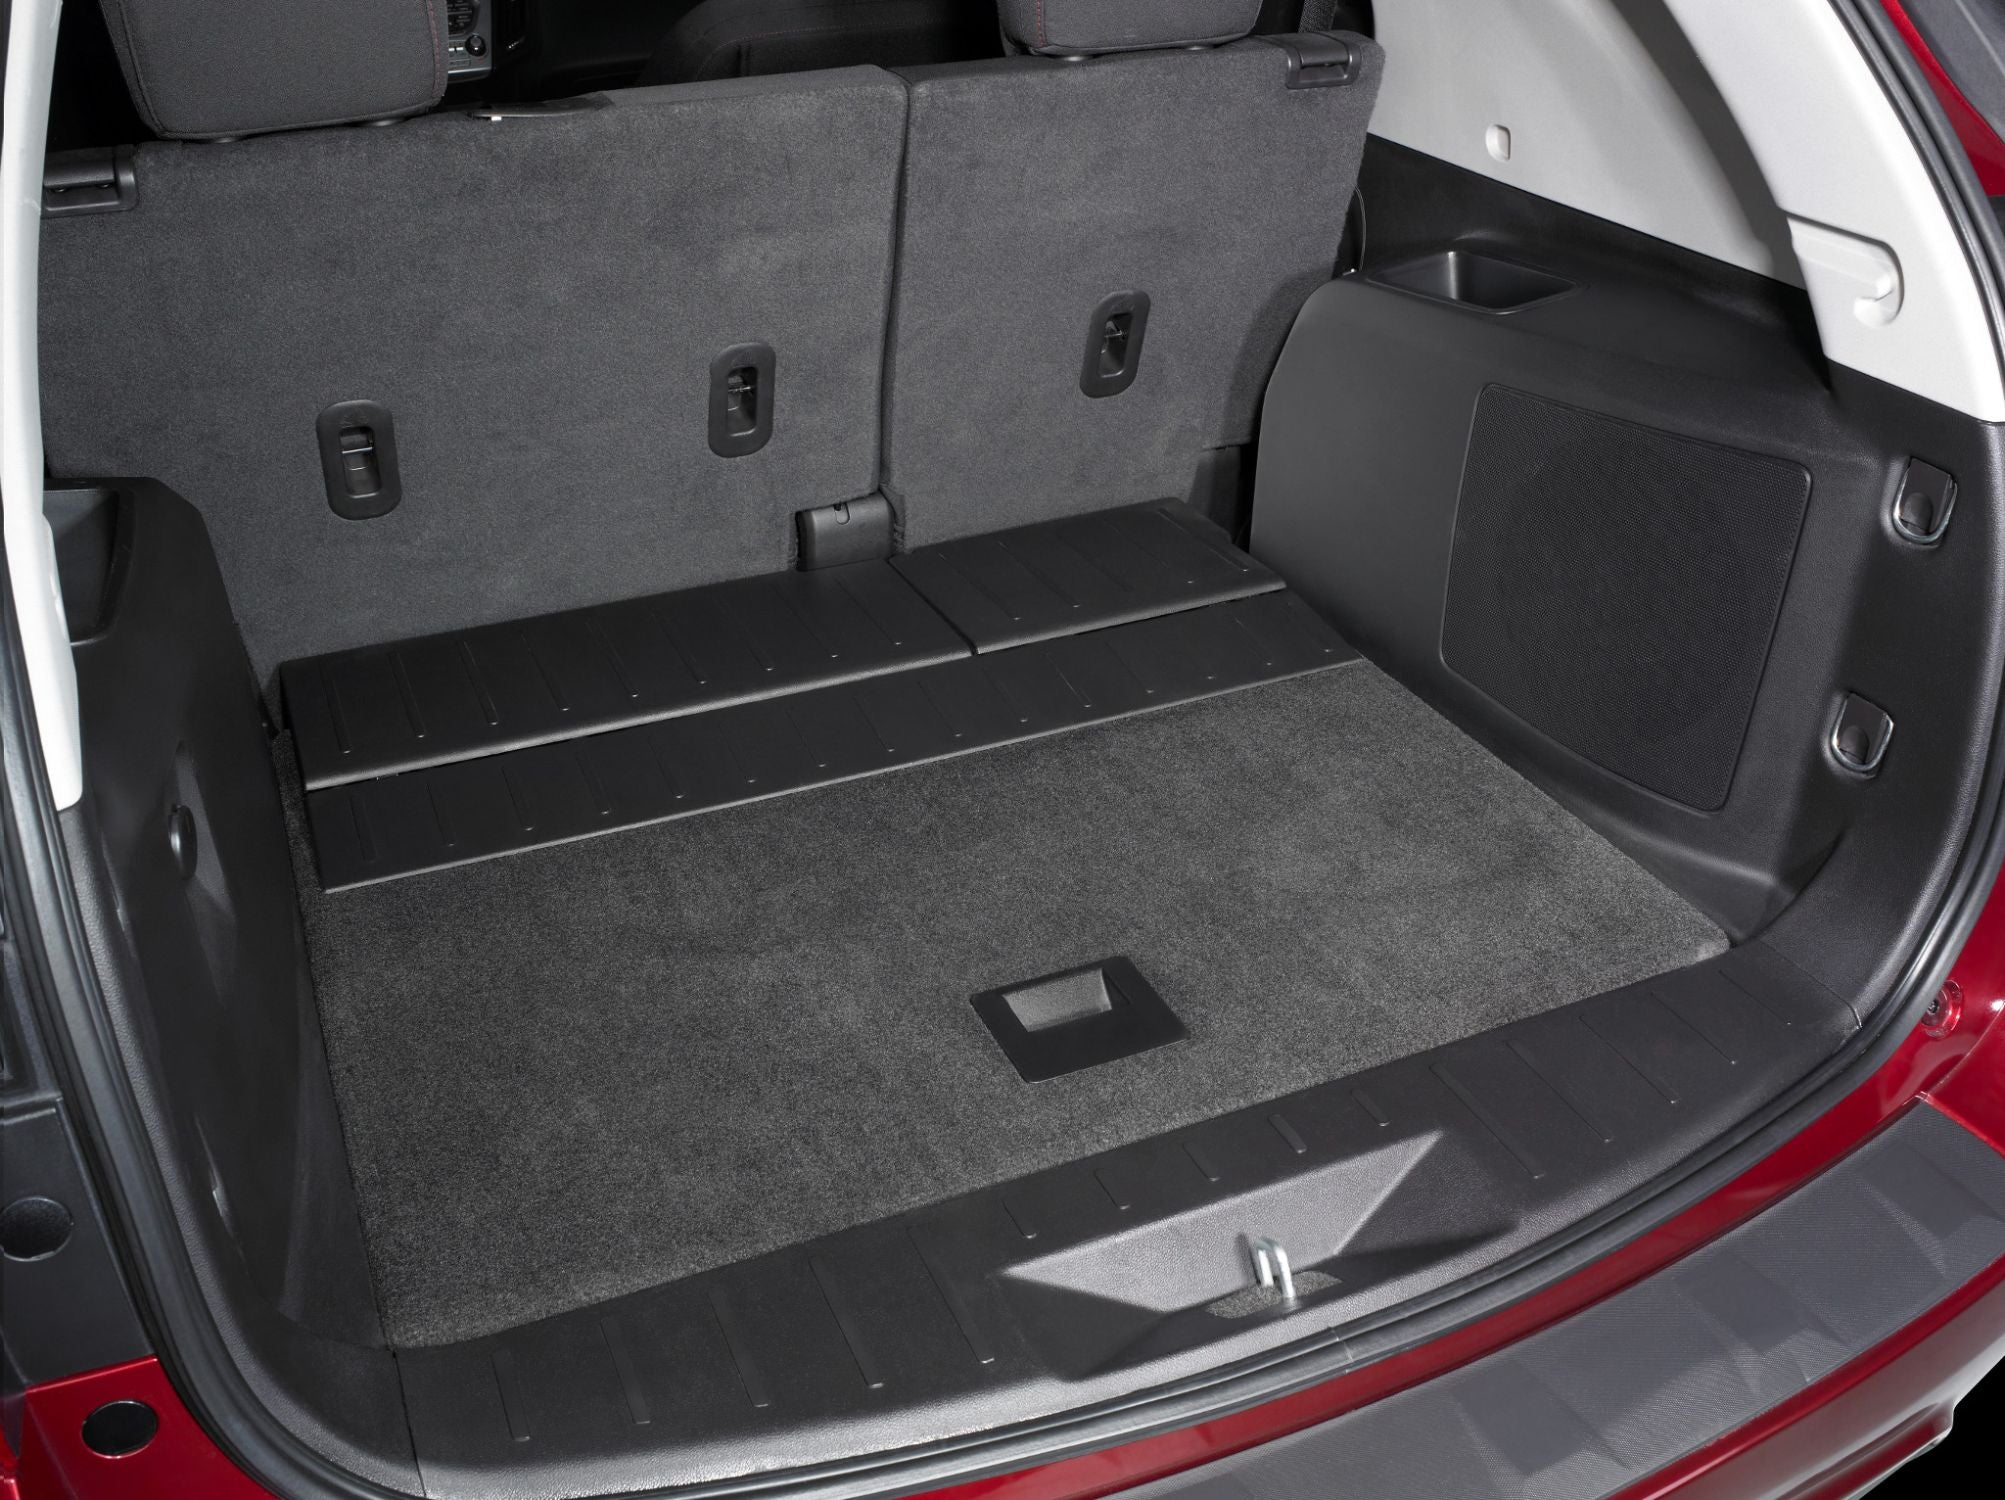 SB-GM-EQNX-10W1v3 Stealthbox Installed in Vehicle